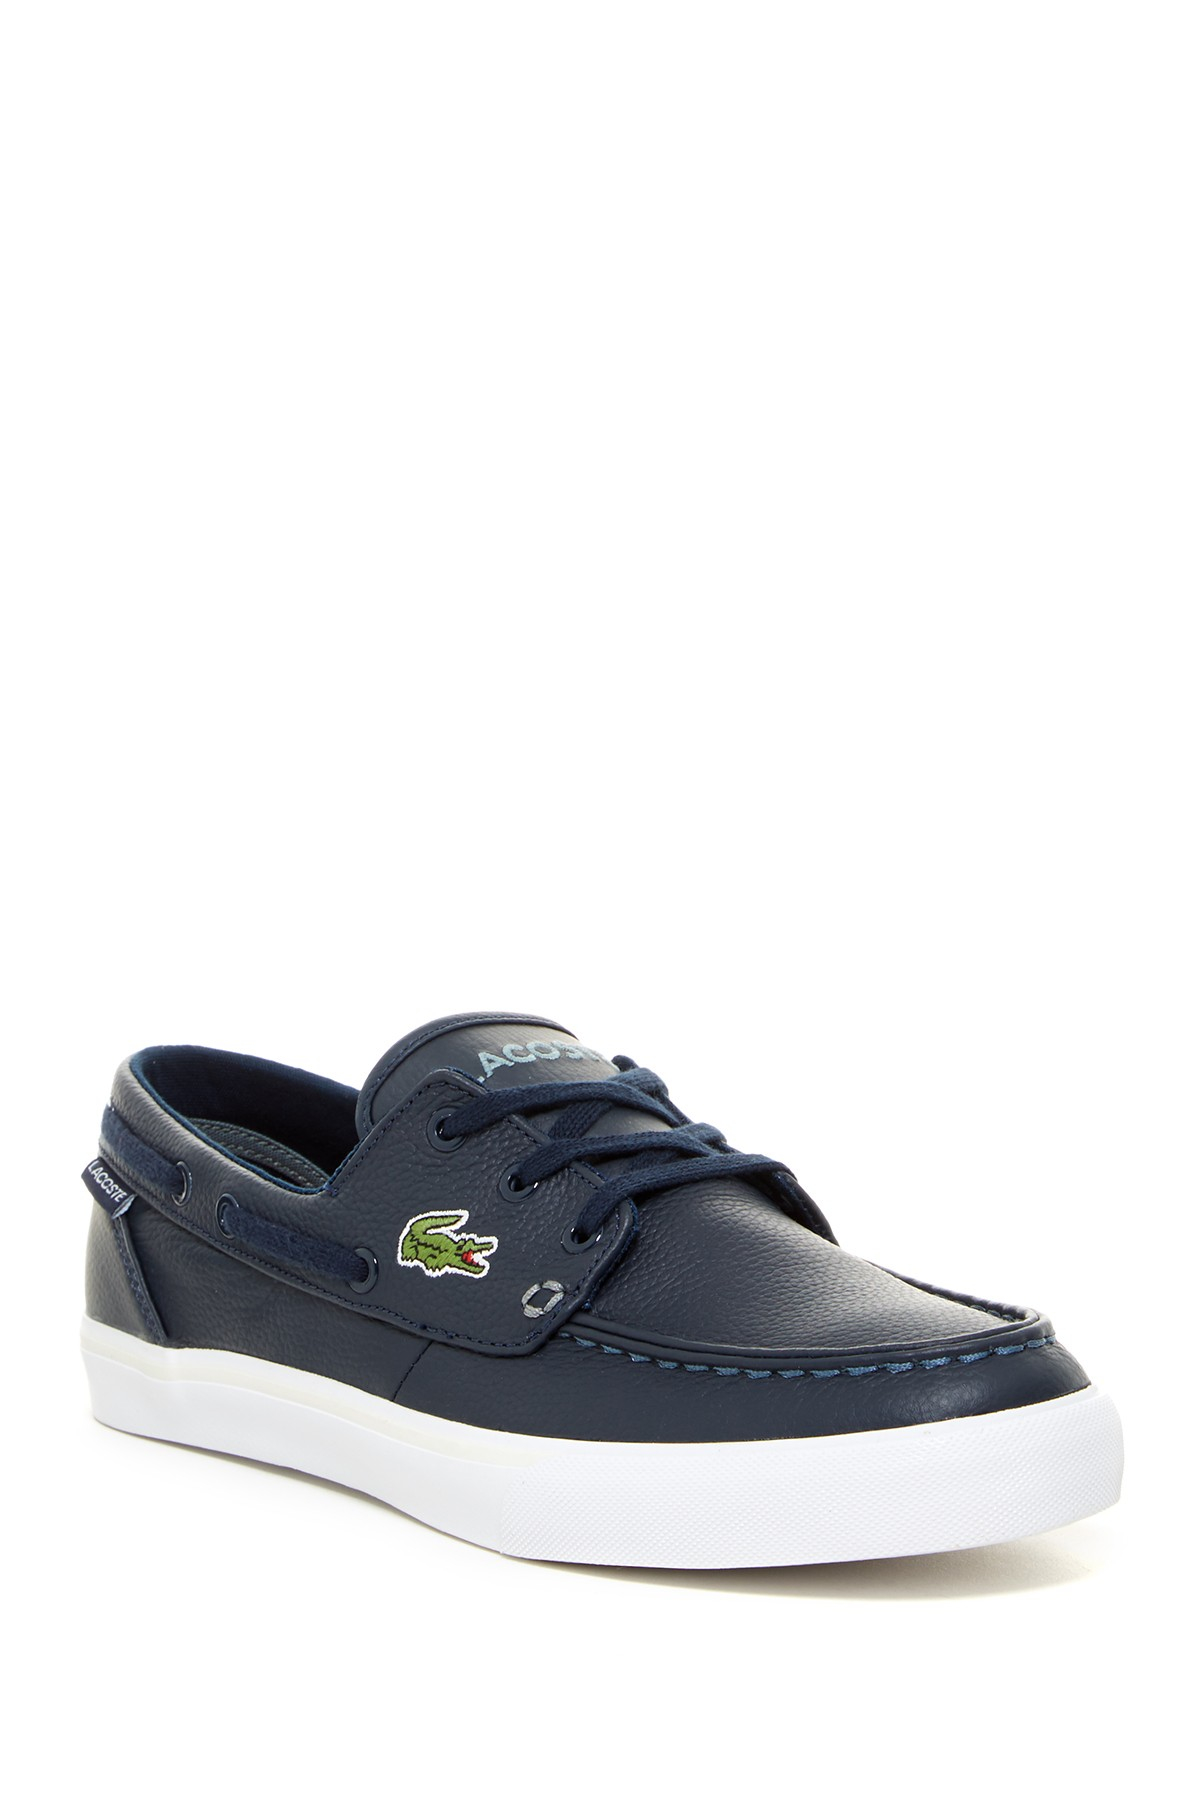 Nordstrom Rack Mens Casual Shoes